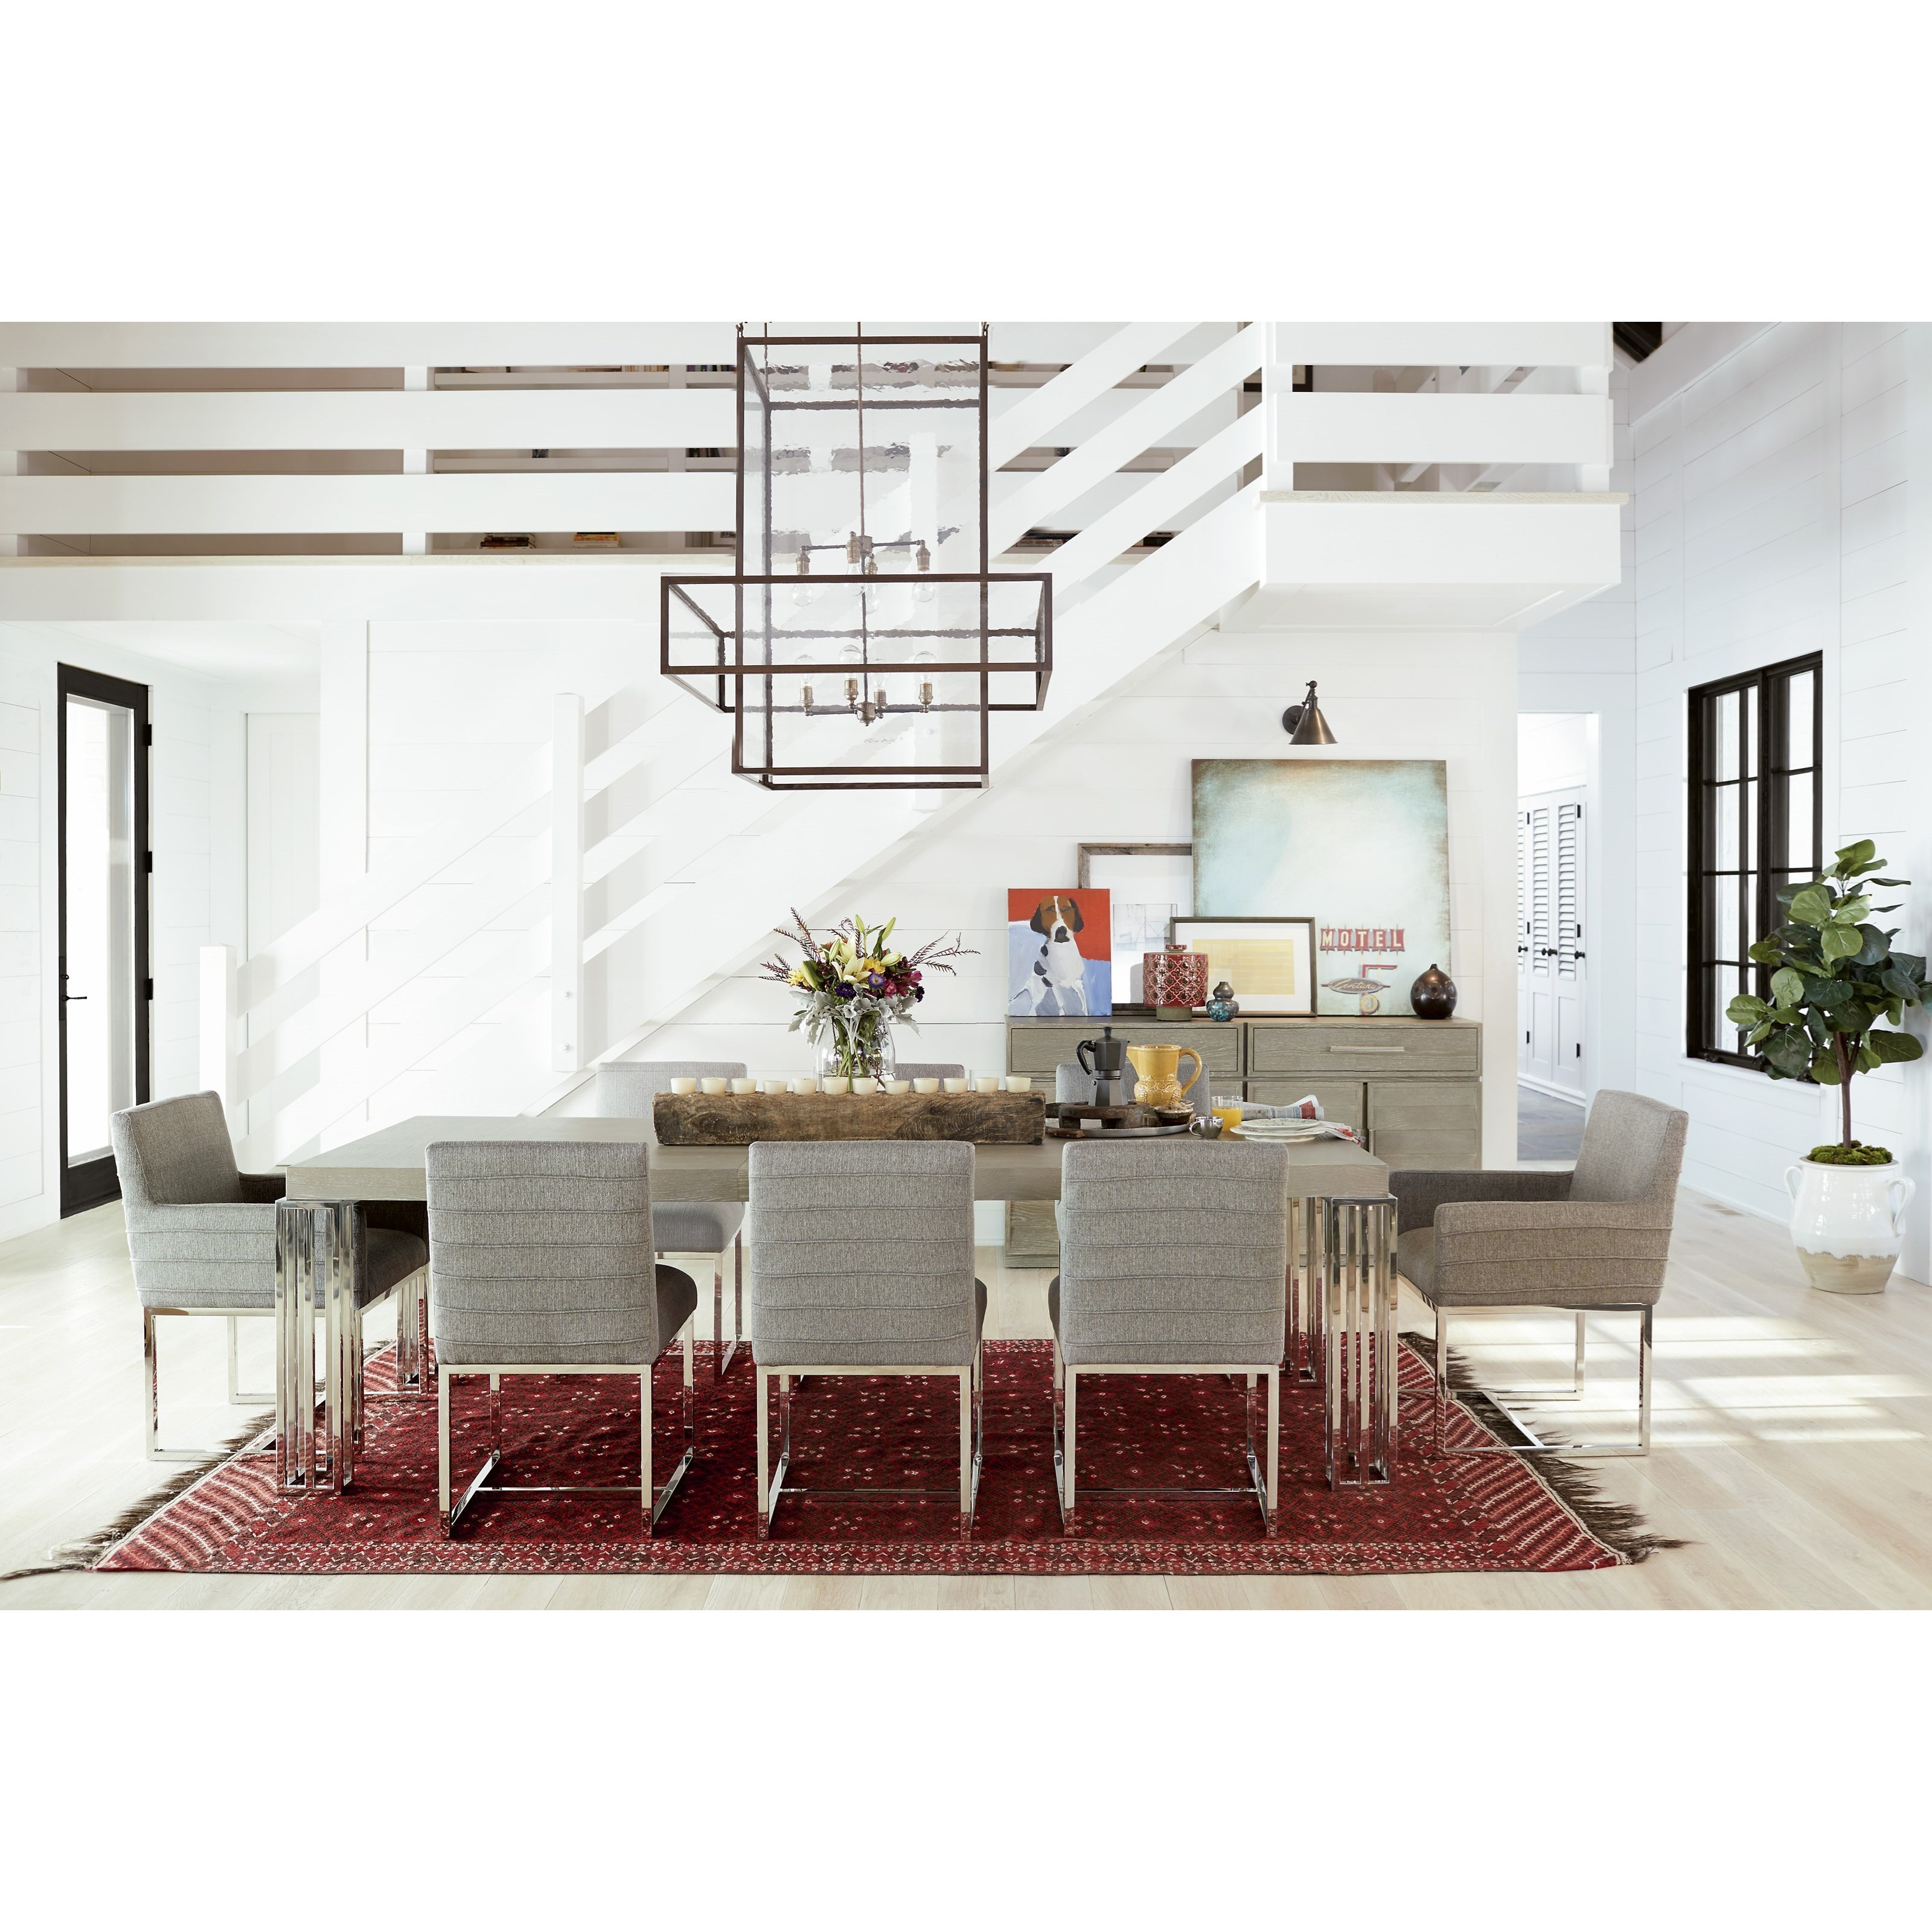 Zephyr Formal Dining Room Group by Universal at Malouf Furniture Co.